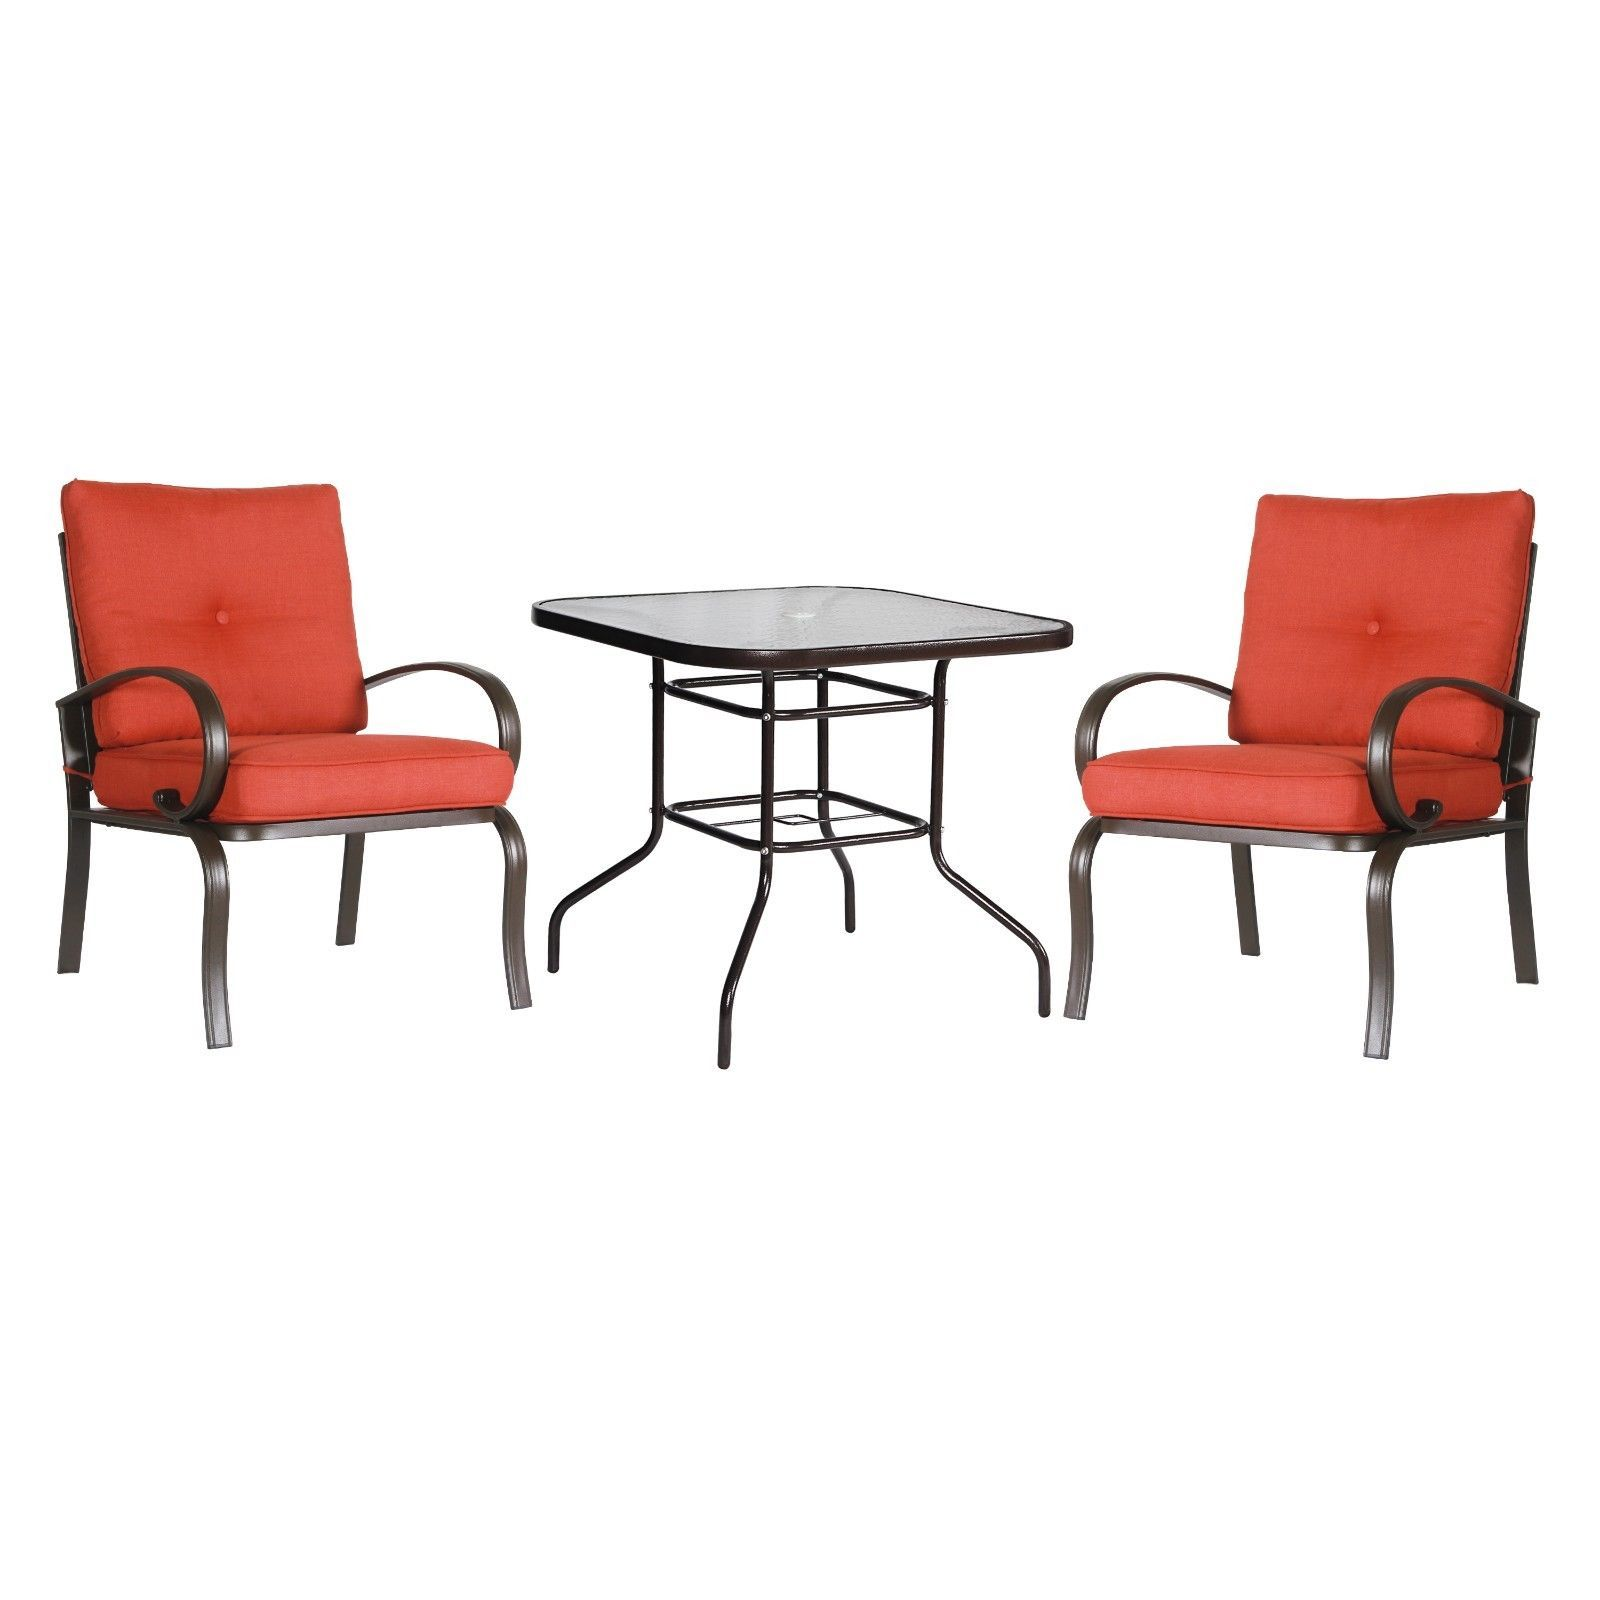 3PC Patio Bistro Set Outdoor Garden Cafe Seat Furniture Set Glass Square Table